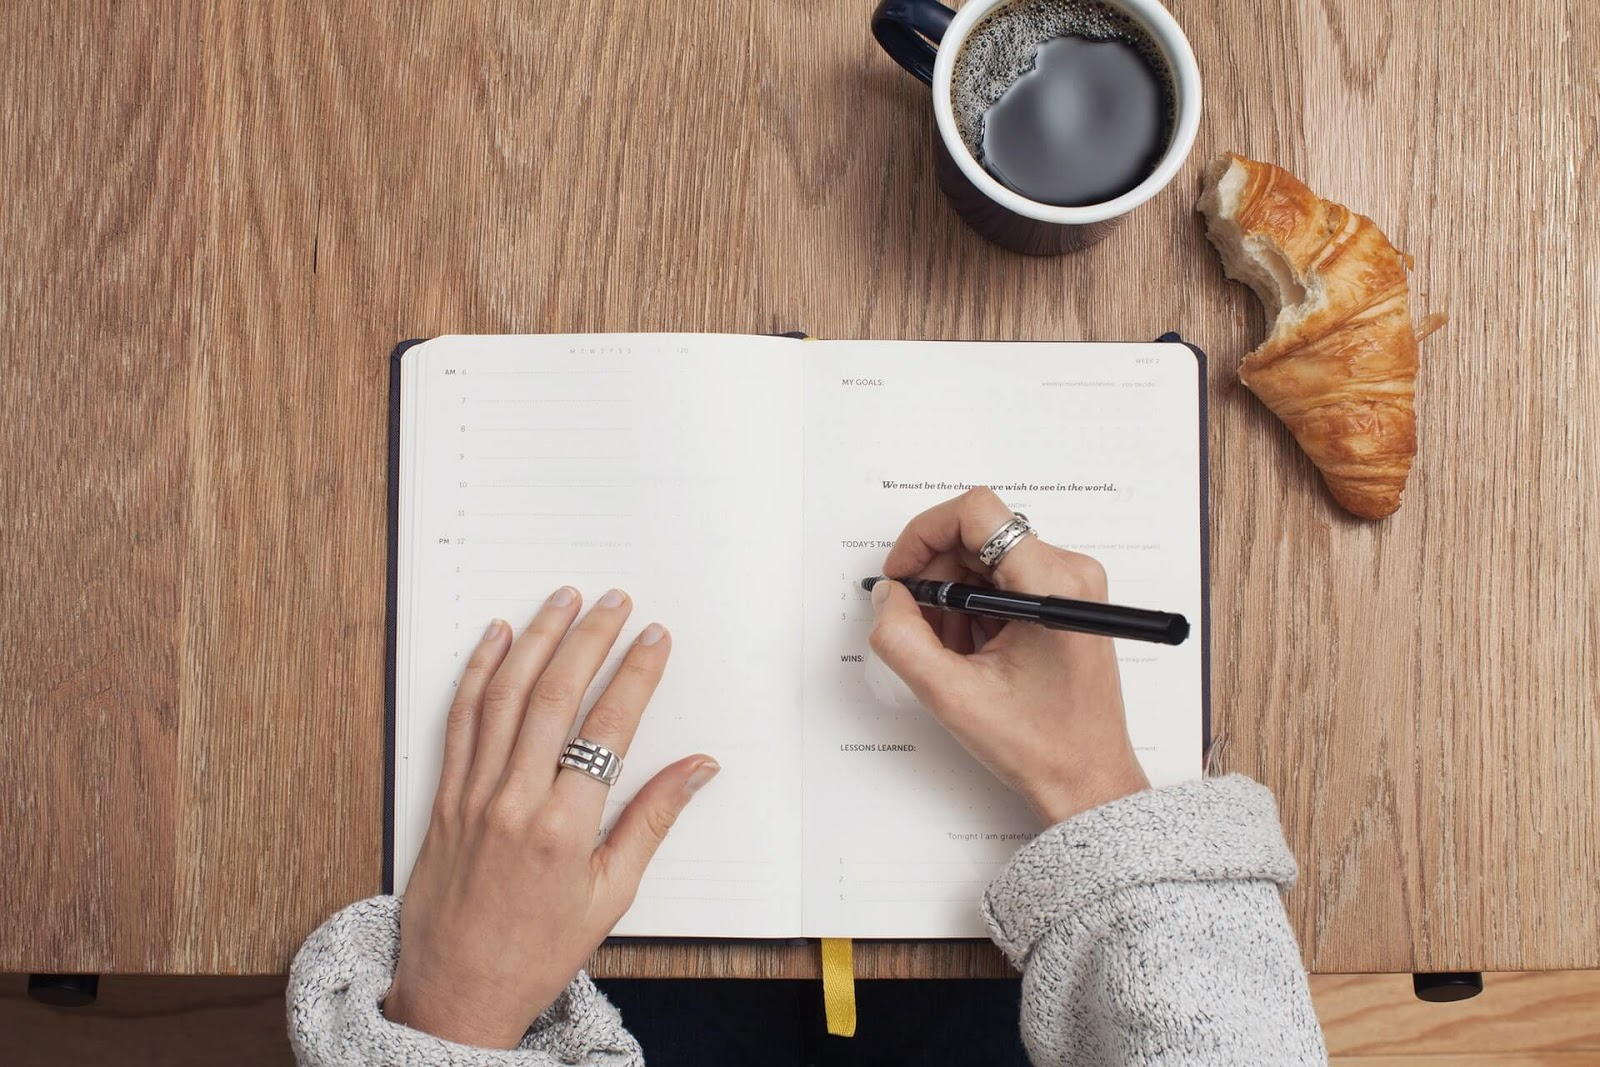 person writing in a notebook with coffee and bun on the table